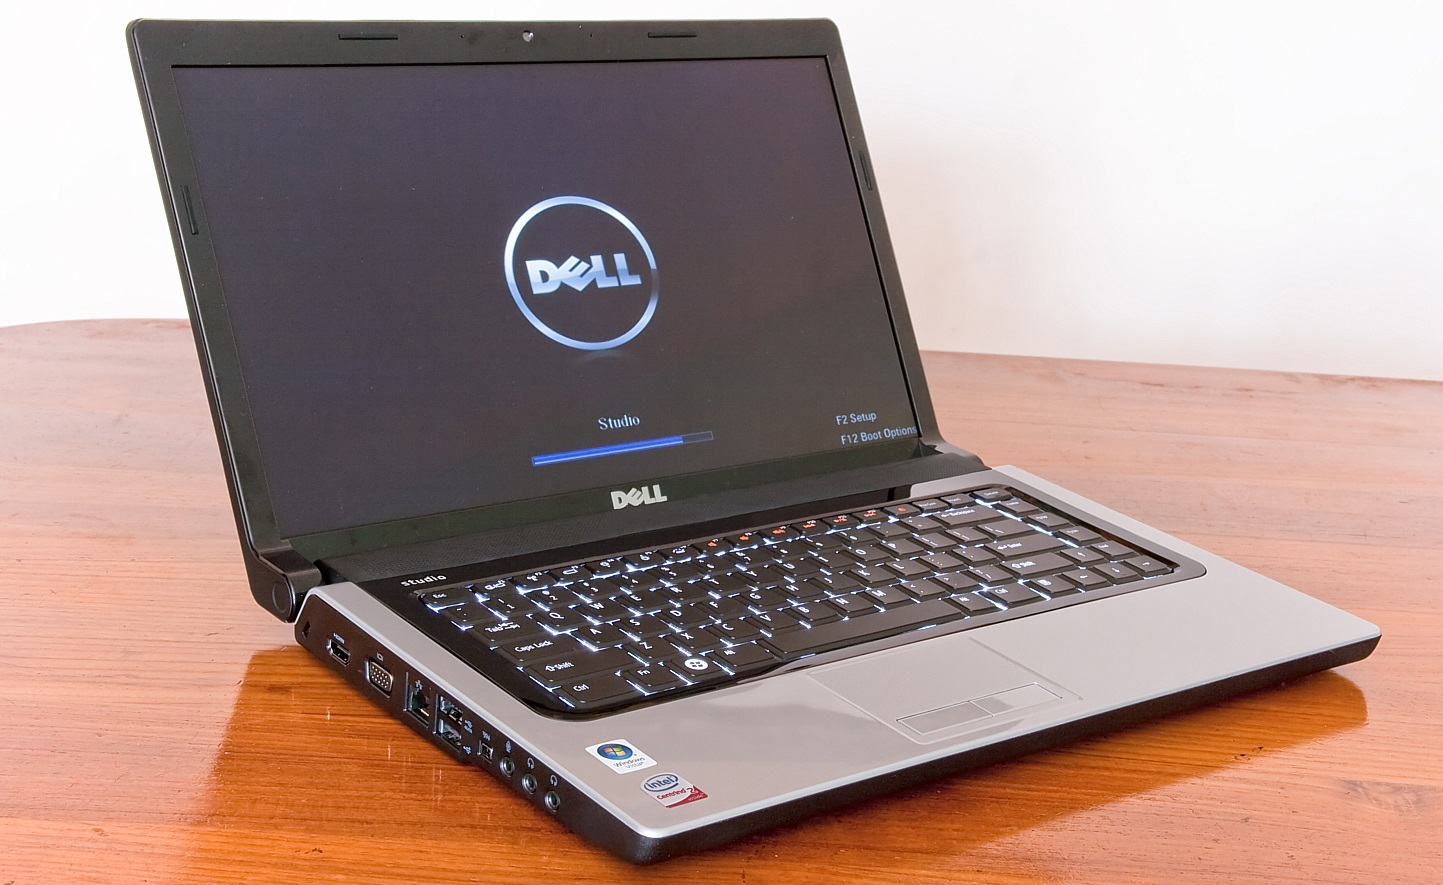 https://mihirb.com/dell-best-laptop-for-students-college/